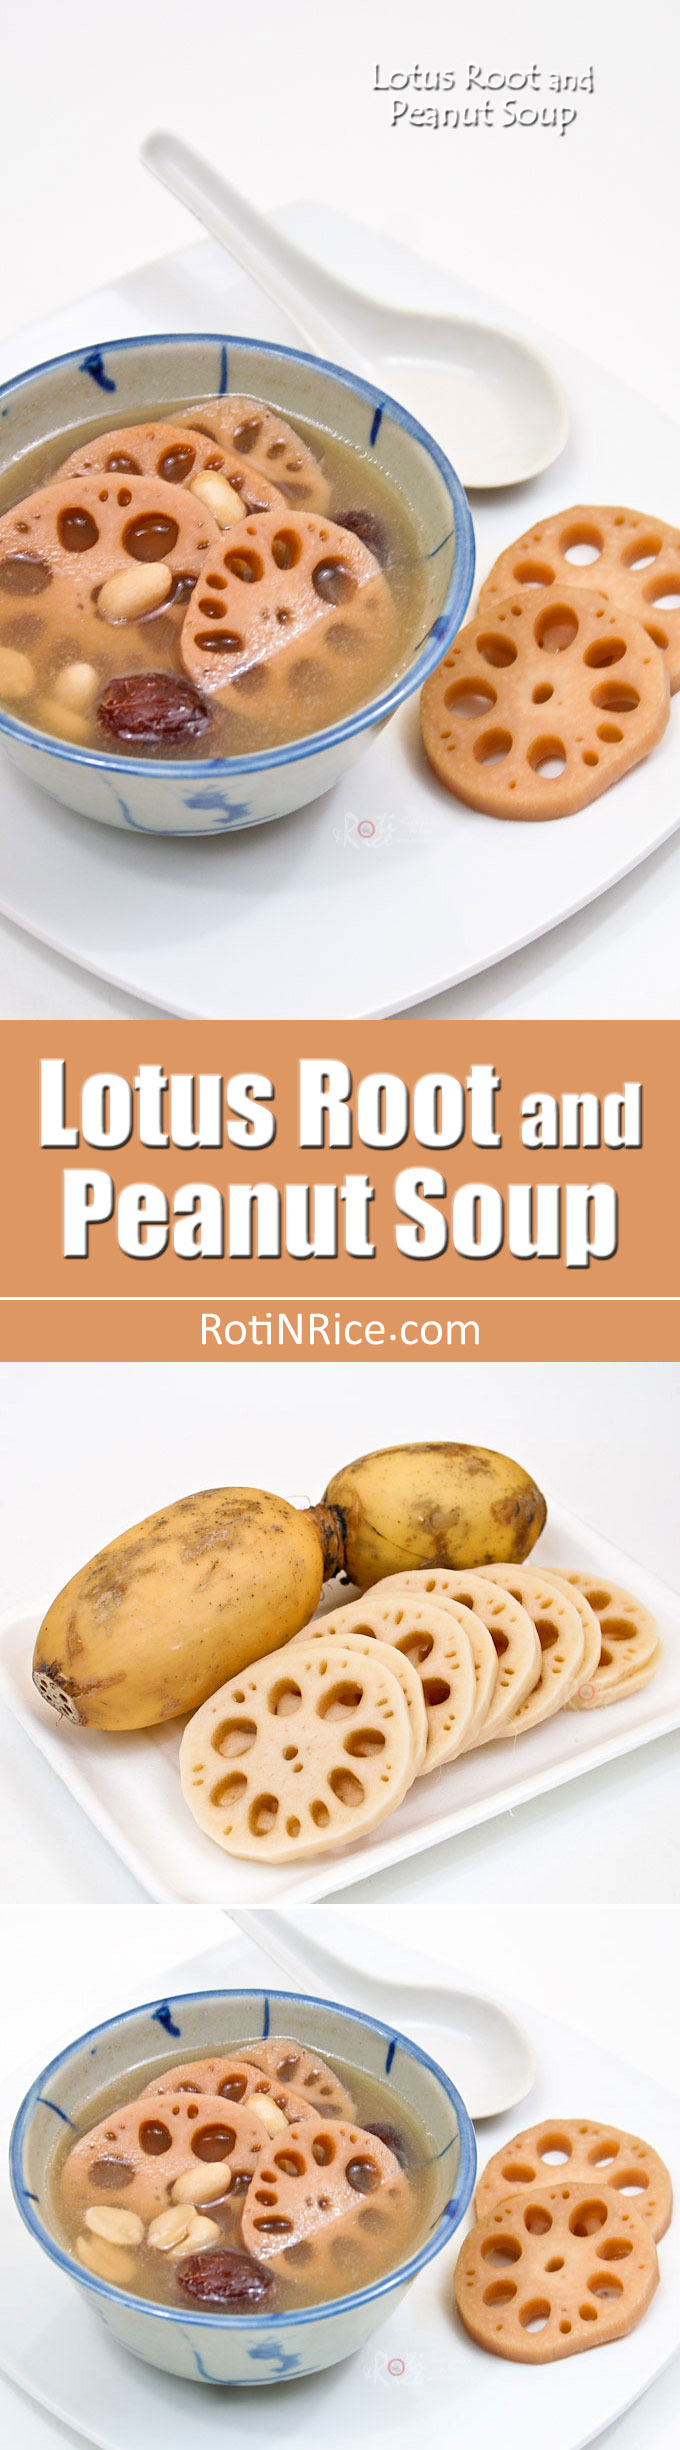 Lotus Root and Peanut Soup is a bowl of comfort on a cold day. This flavorful soup is slowly simmered to bring out all its wholesome goodness. | RotiNRice.com